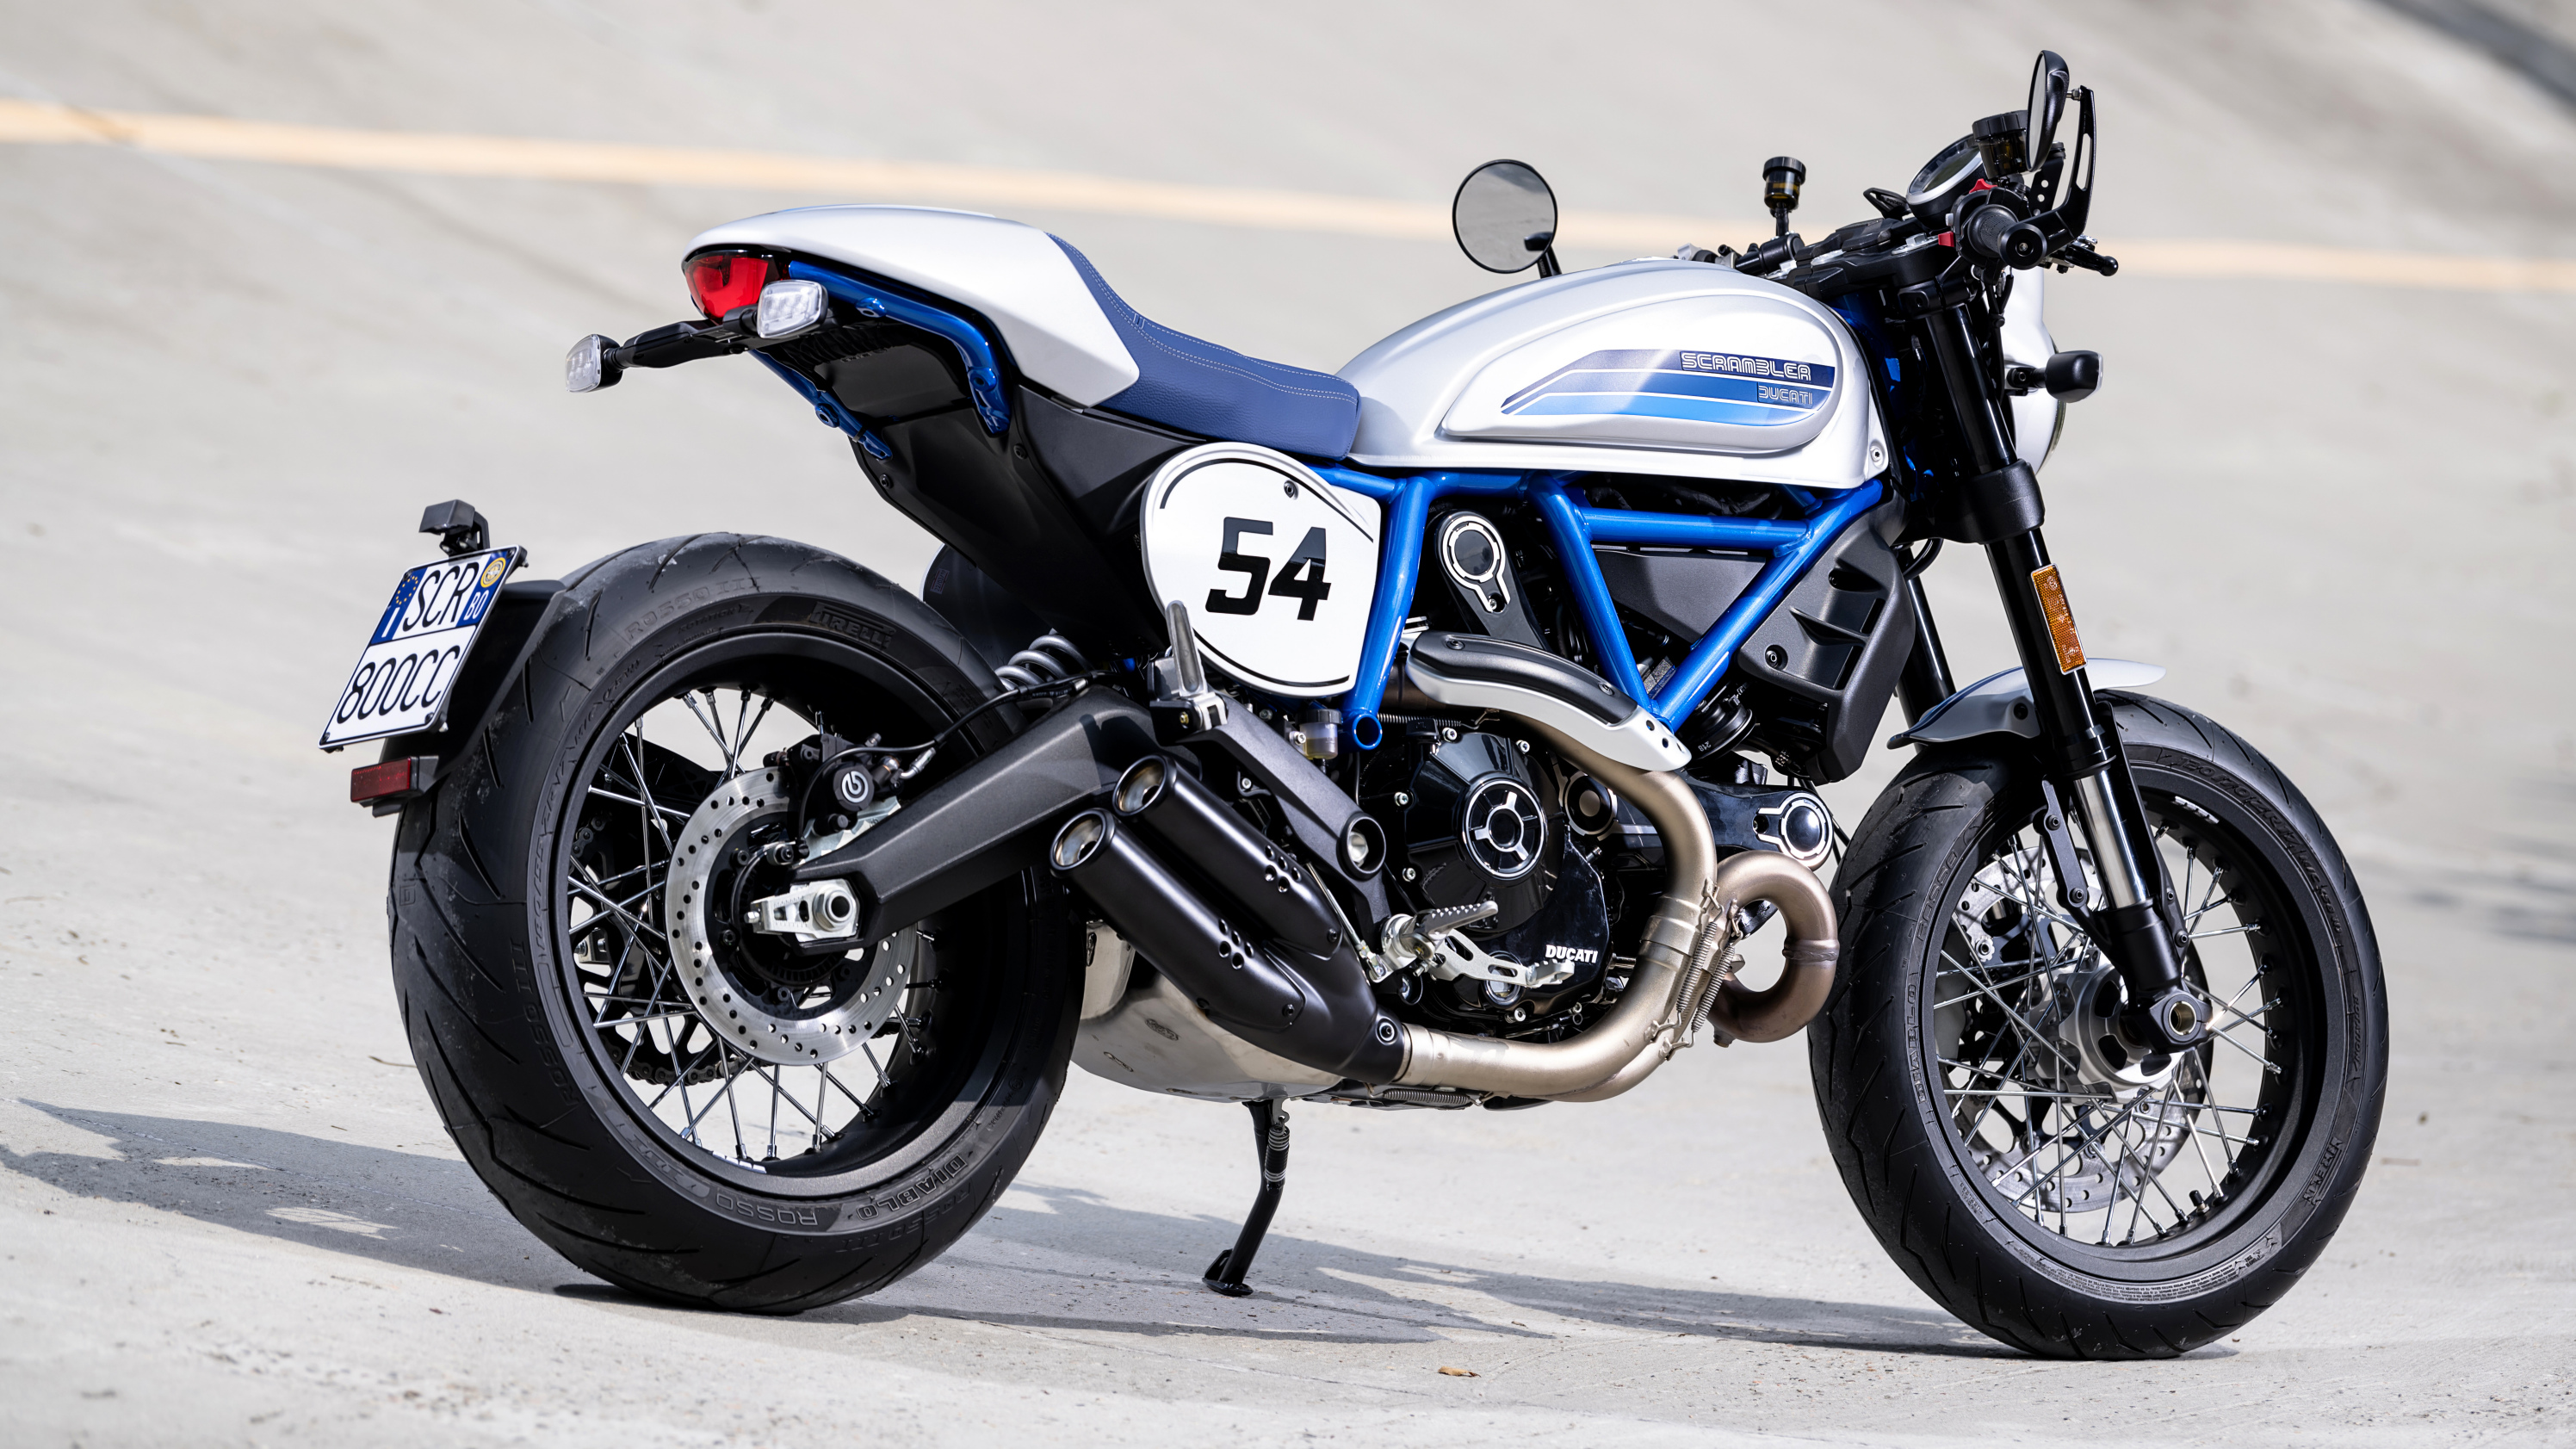 2019 Ducati Scrambler Café Racer Top Speed